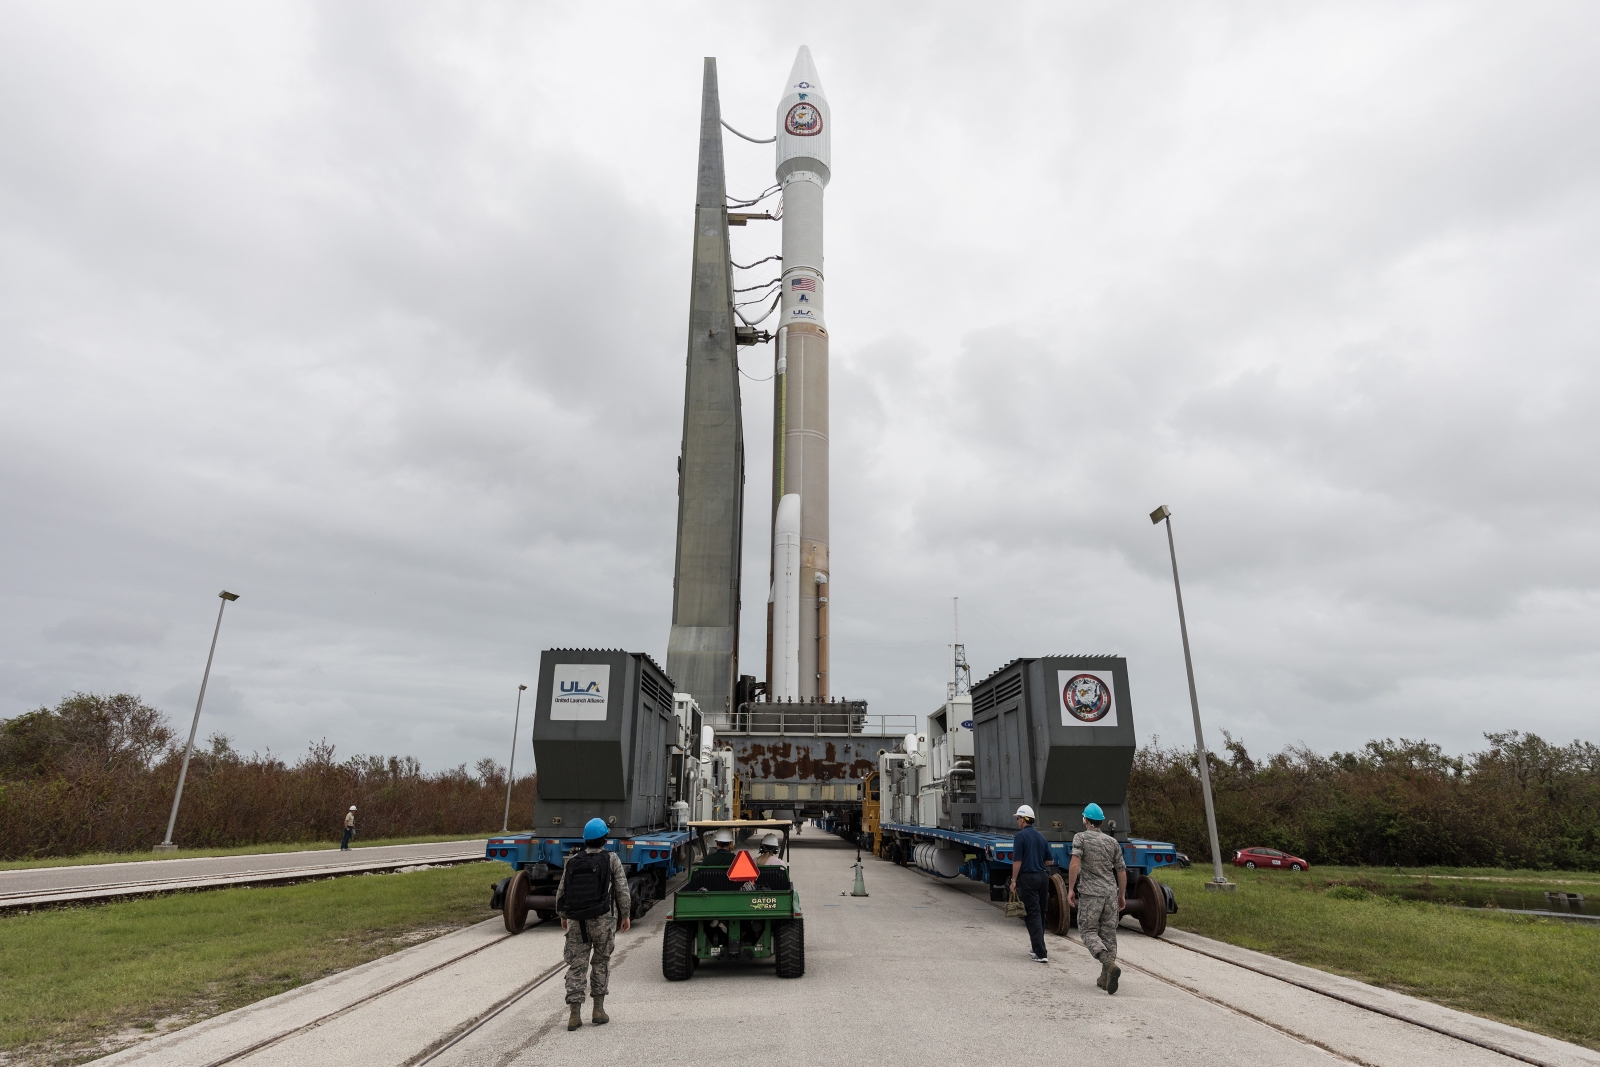 An Atlas V rocket is rolled to the pad at Space Launch Complex 41. Launching in the 421 configuration, the Atlas V is carrying the NROL-52 mission for the National Reconnaissance Office. Photo and Caption Credit: ULA